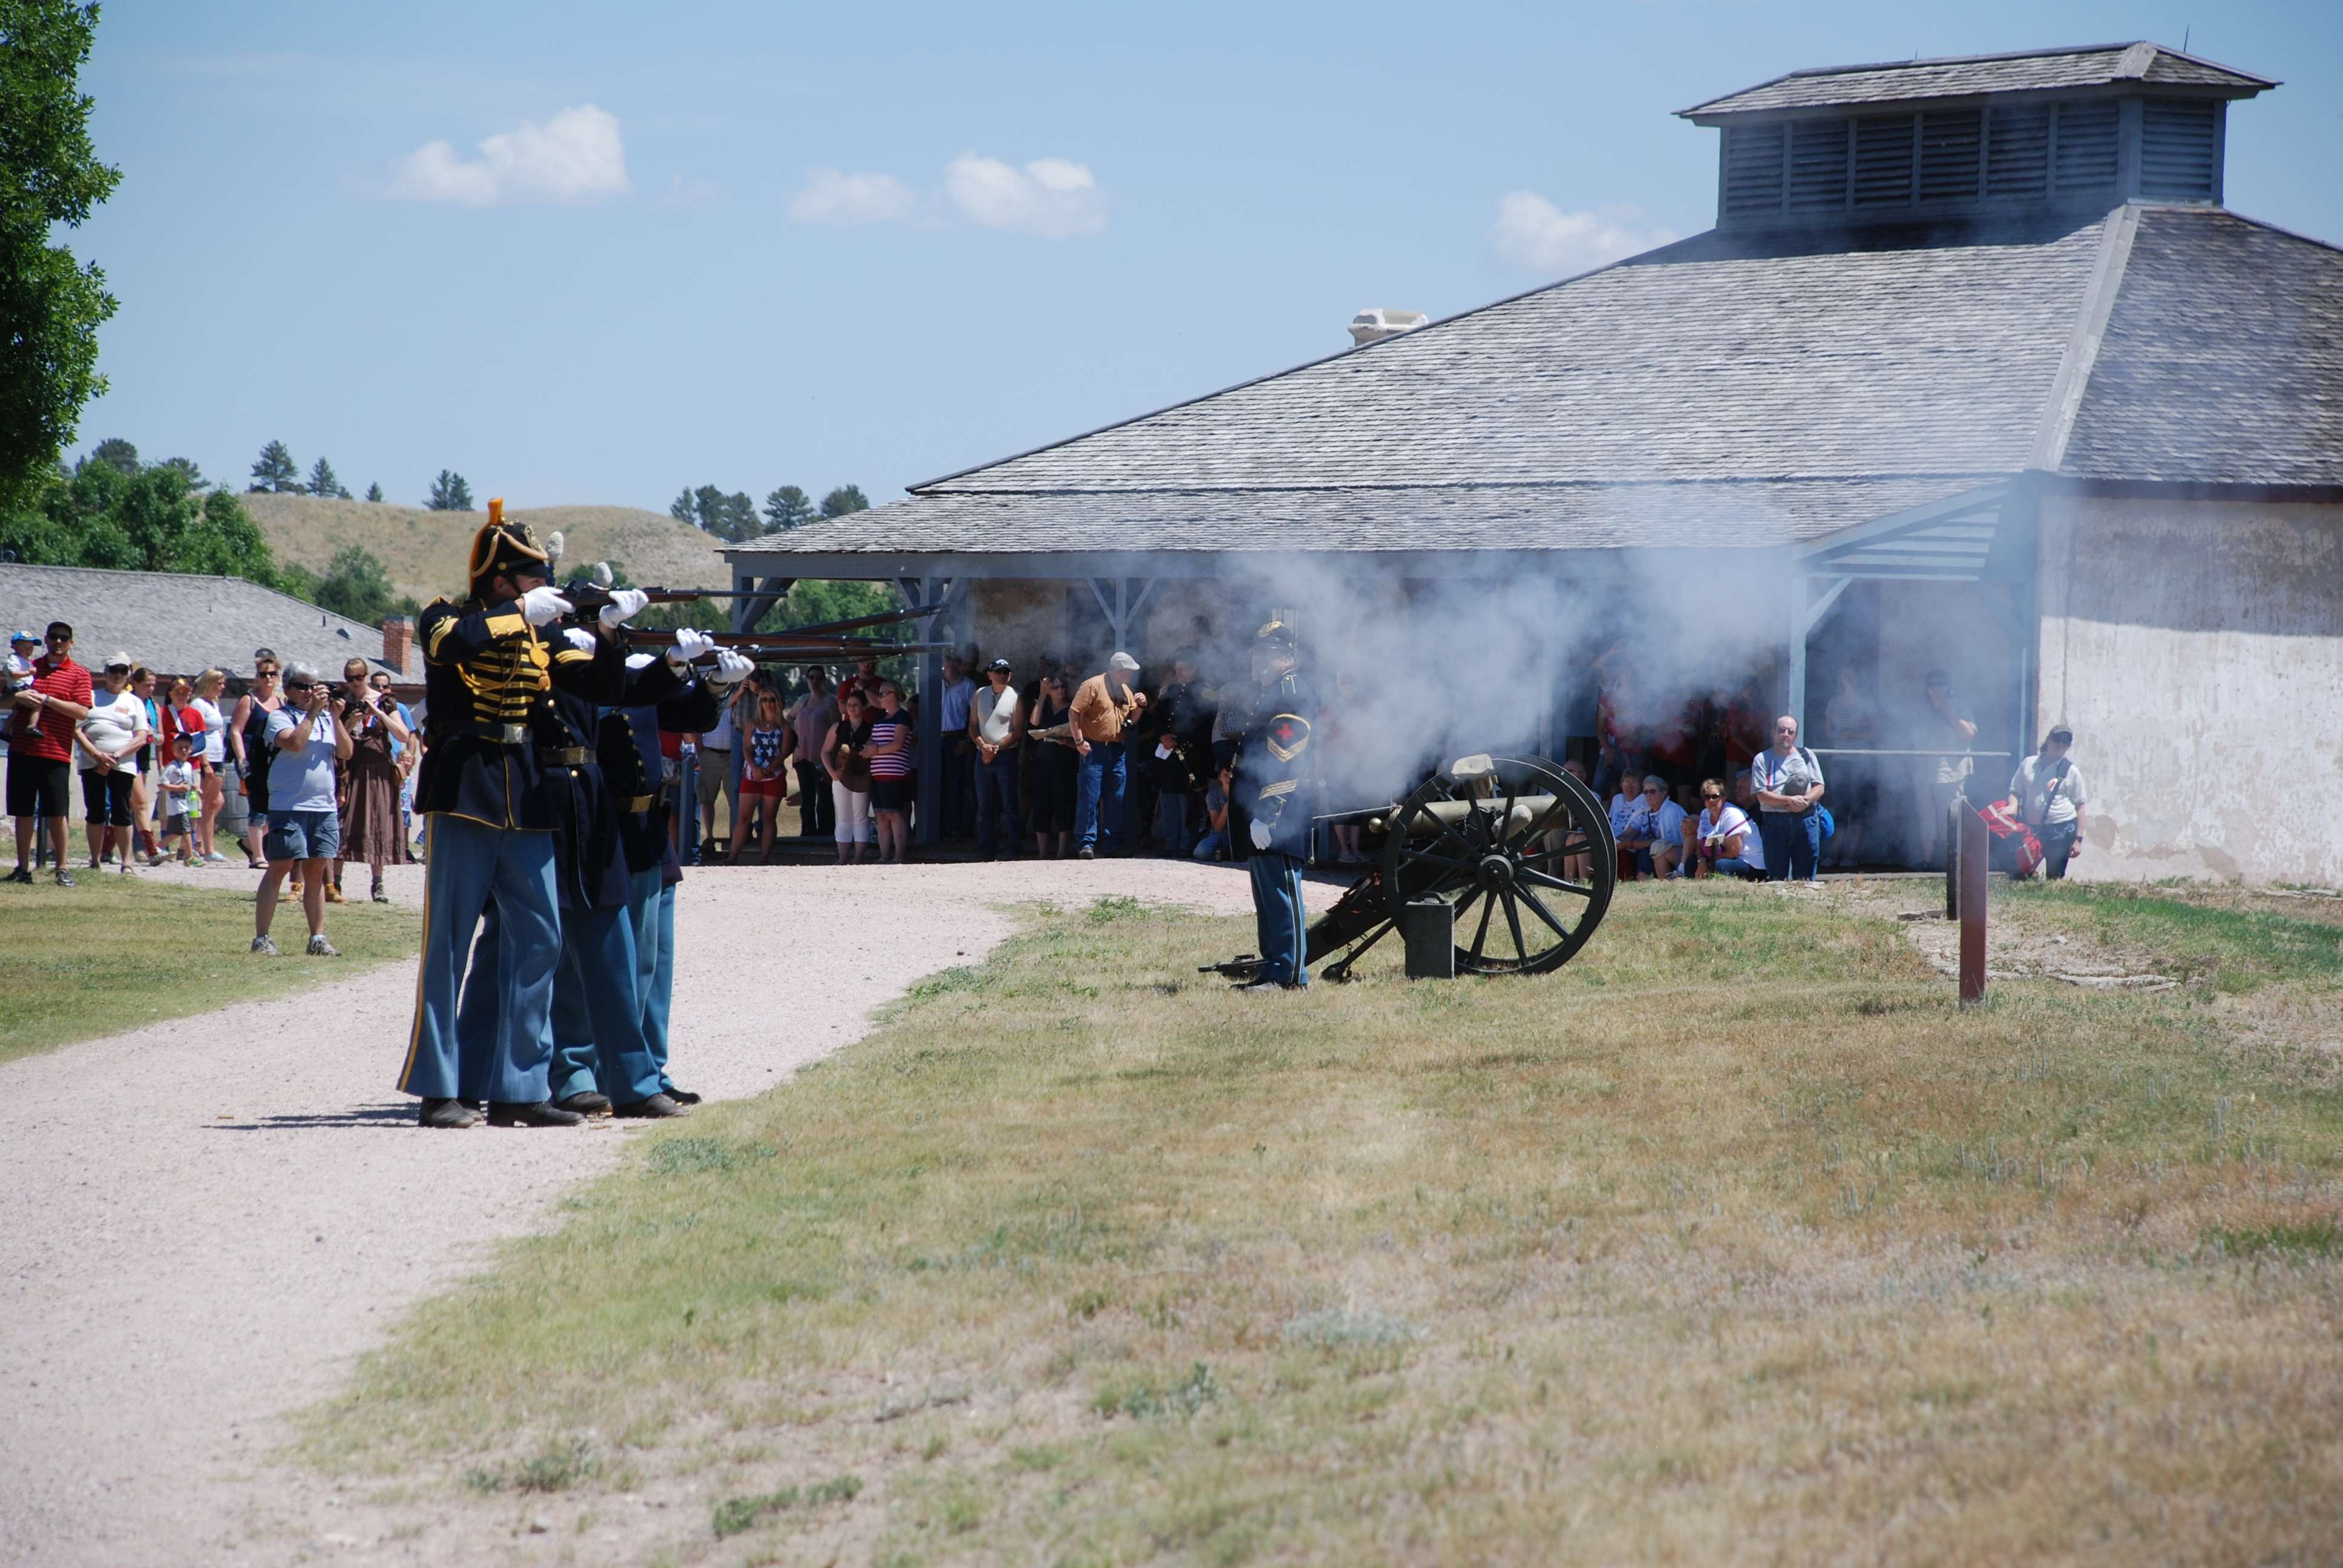 Rifle salute on Fourth of July with artillery.